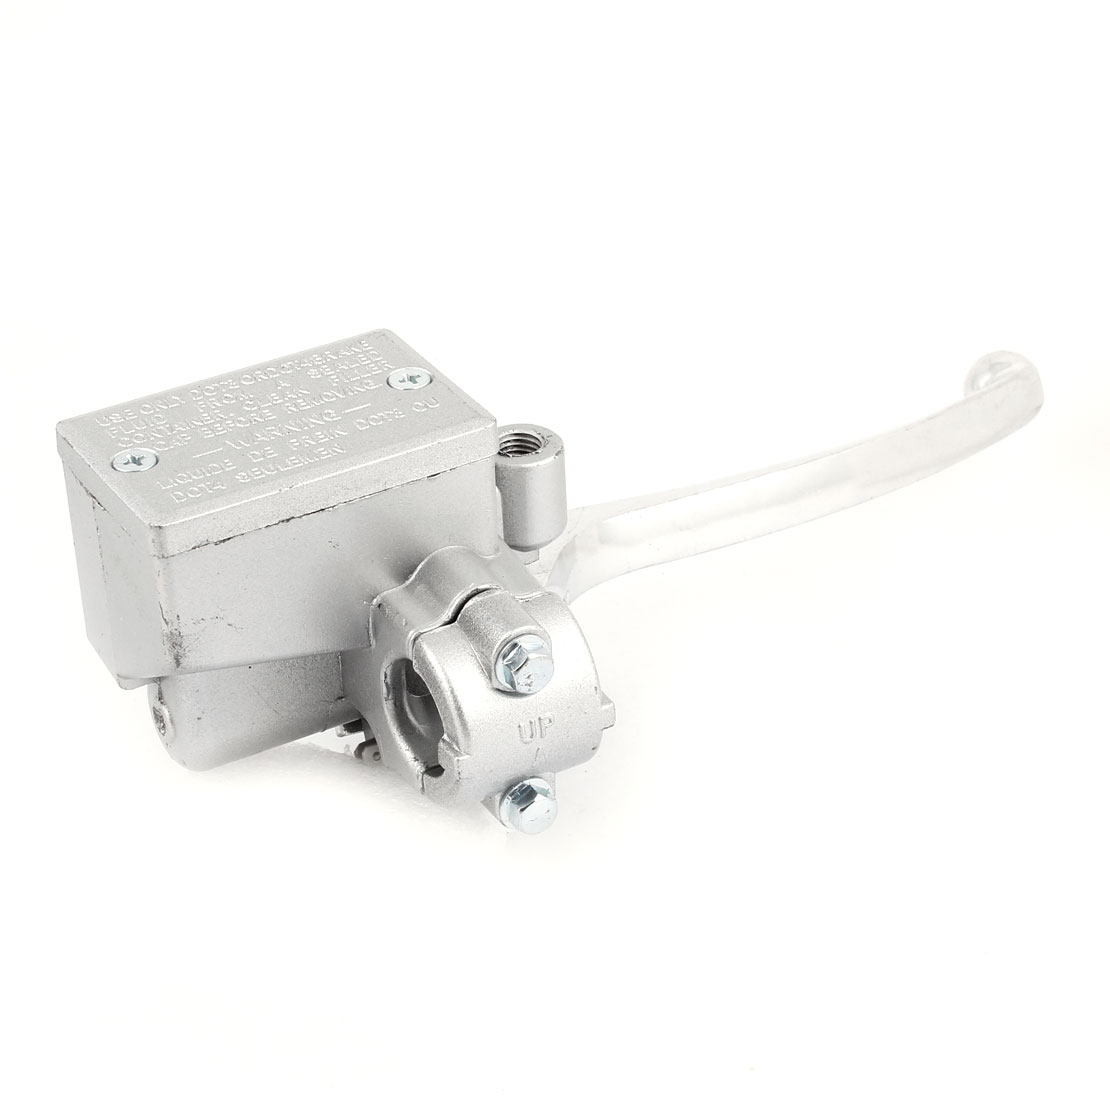 Silver Tone Metal Motorcycle Front Brake Pump Accessory for CG